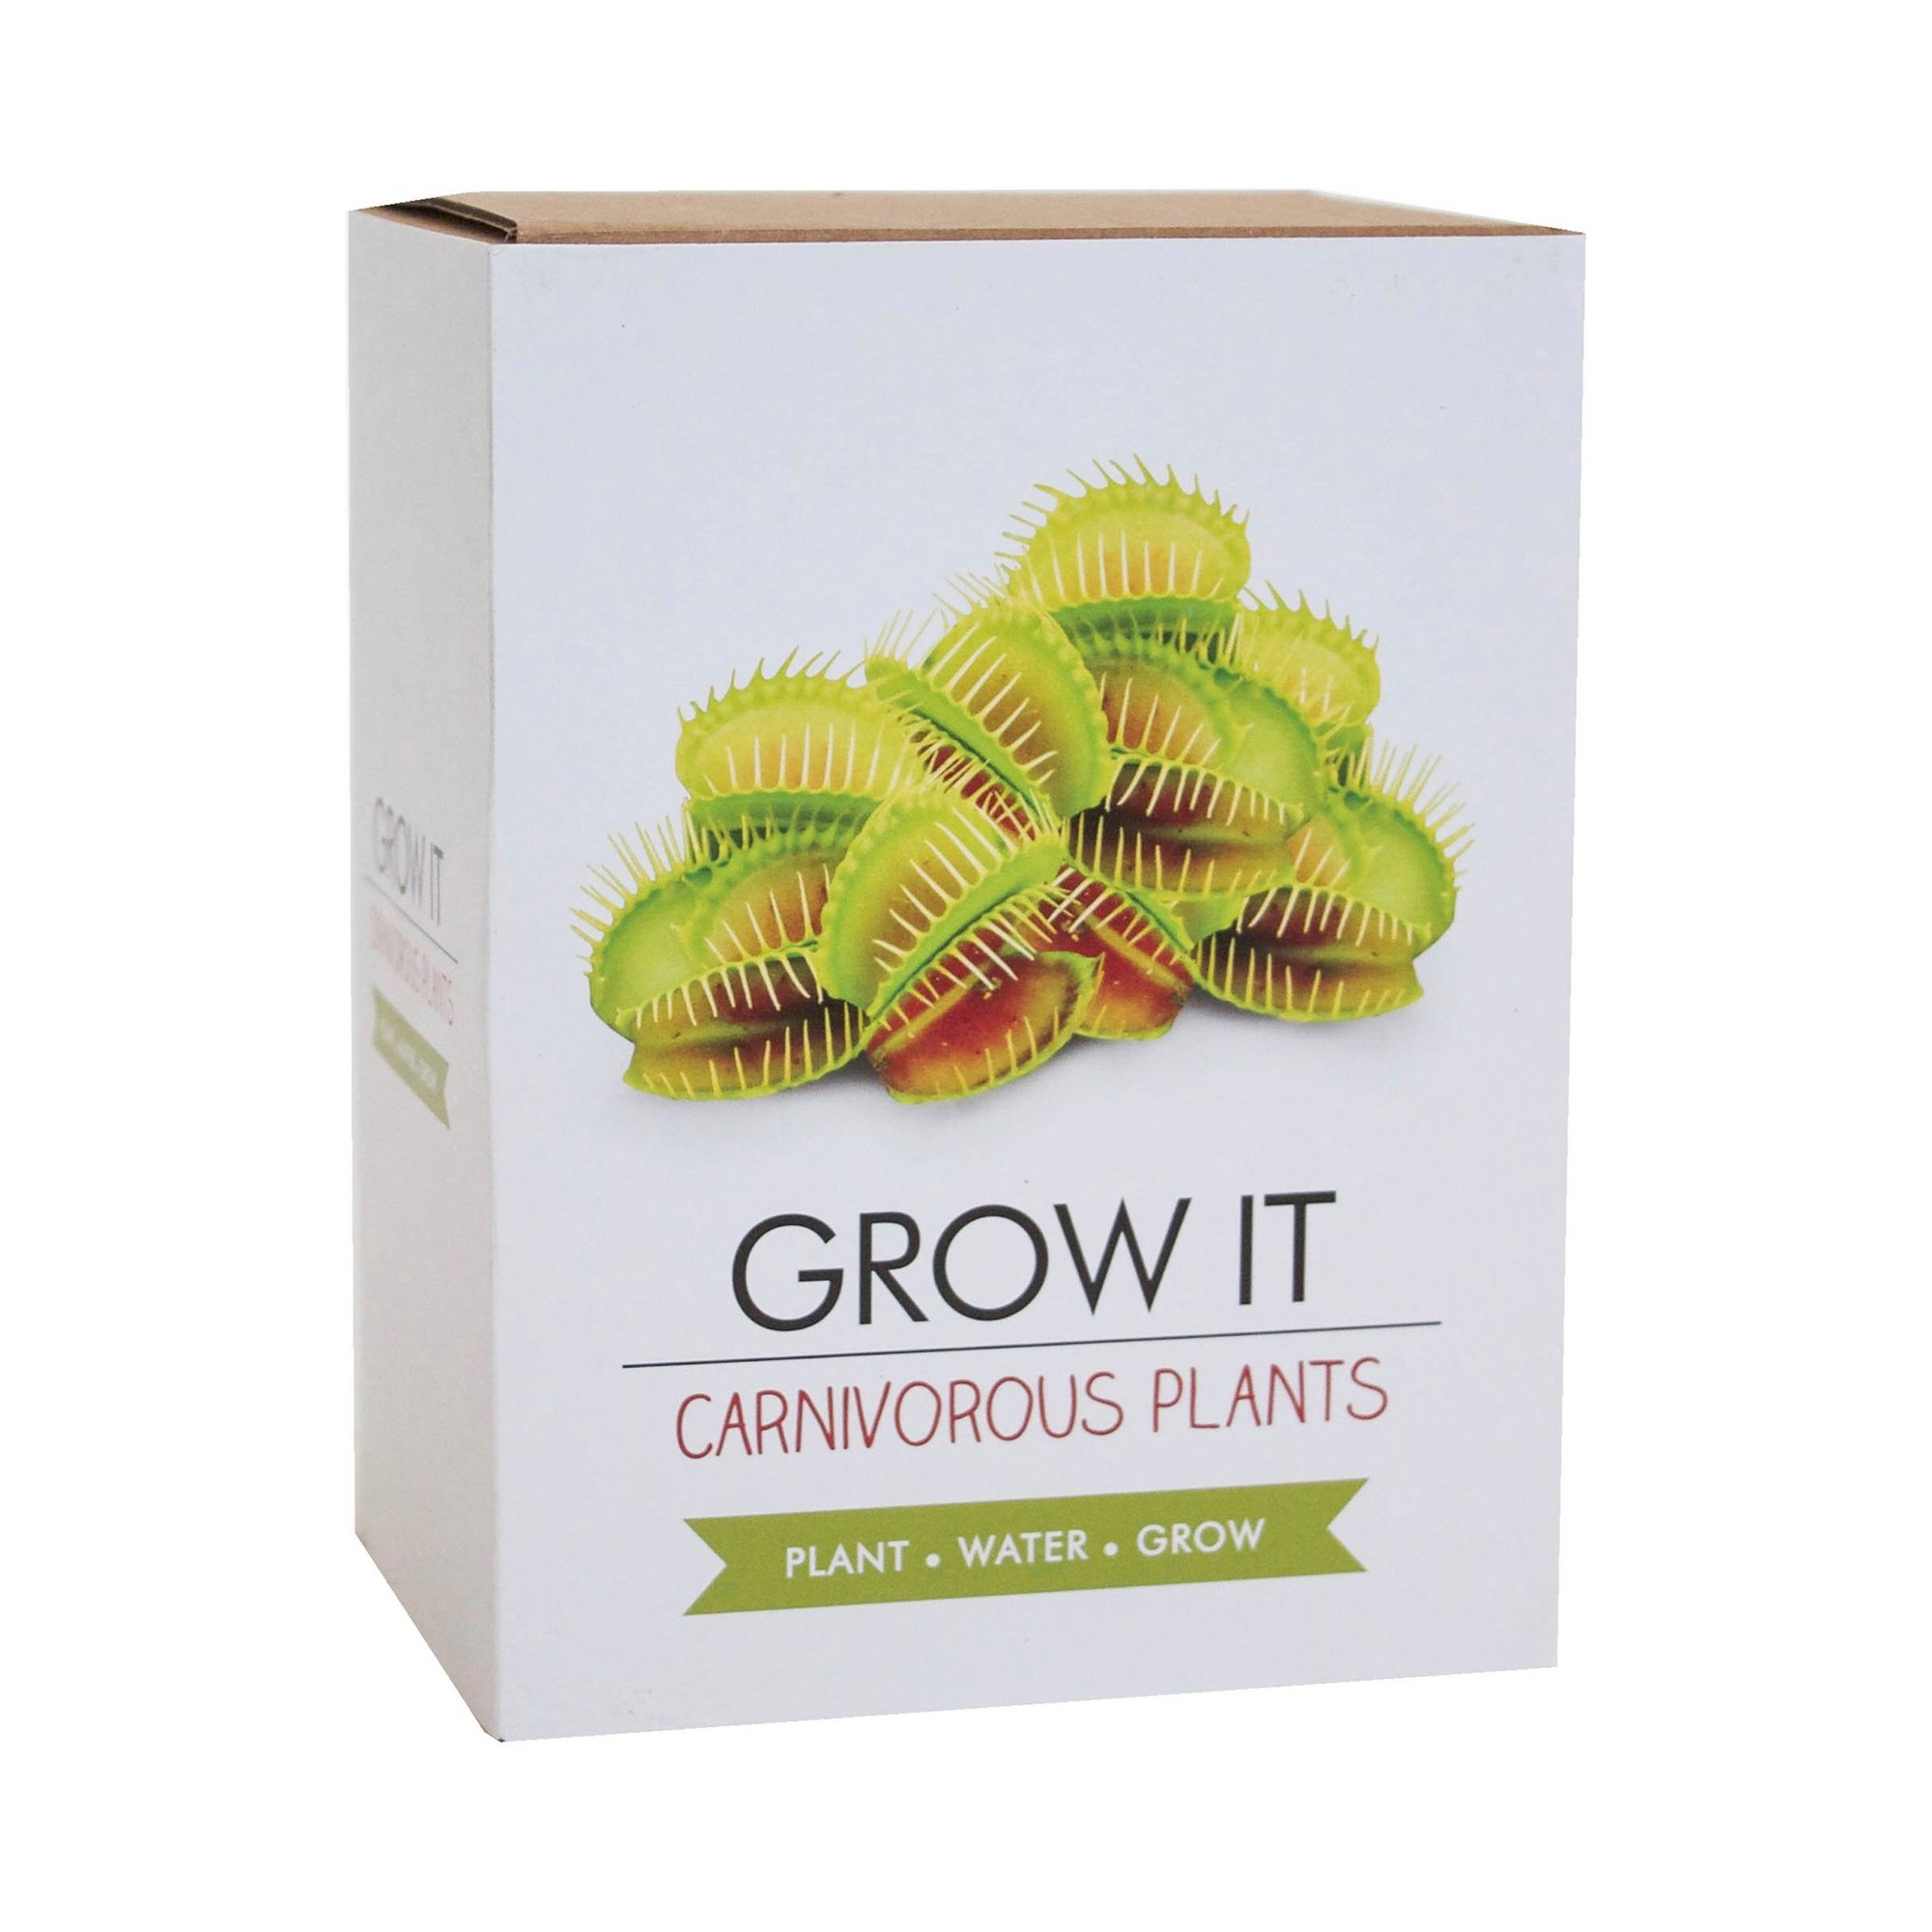 Image of Grow It - Carnivorous Plants